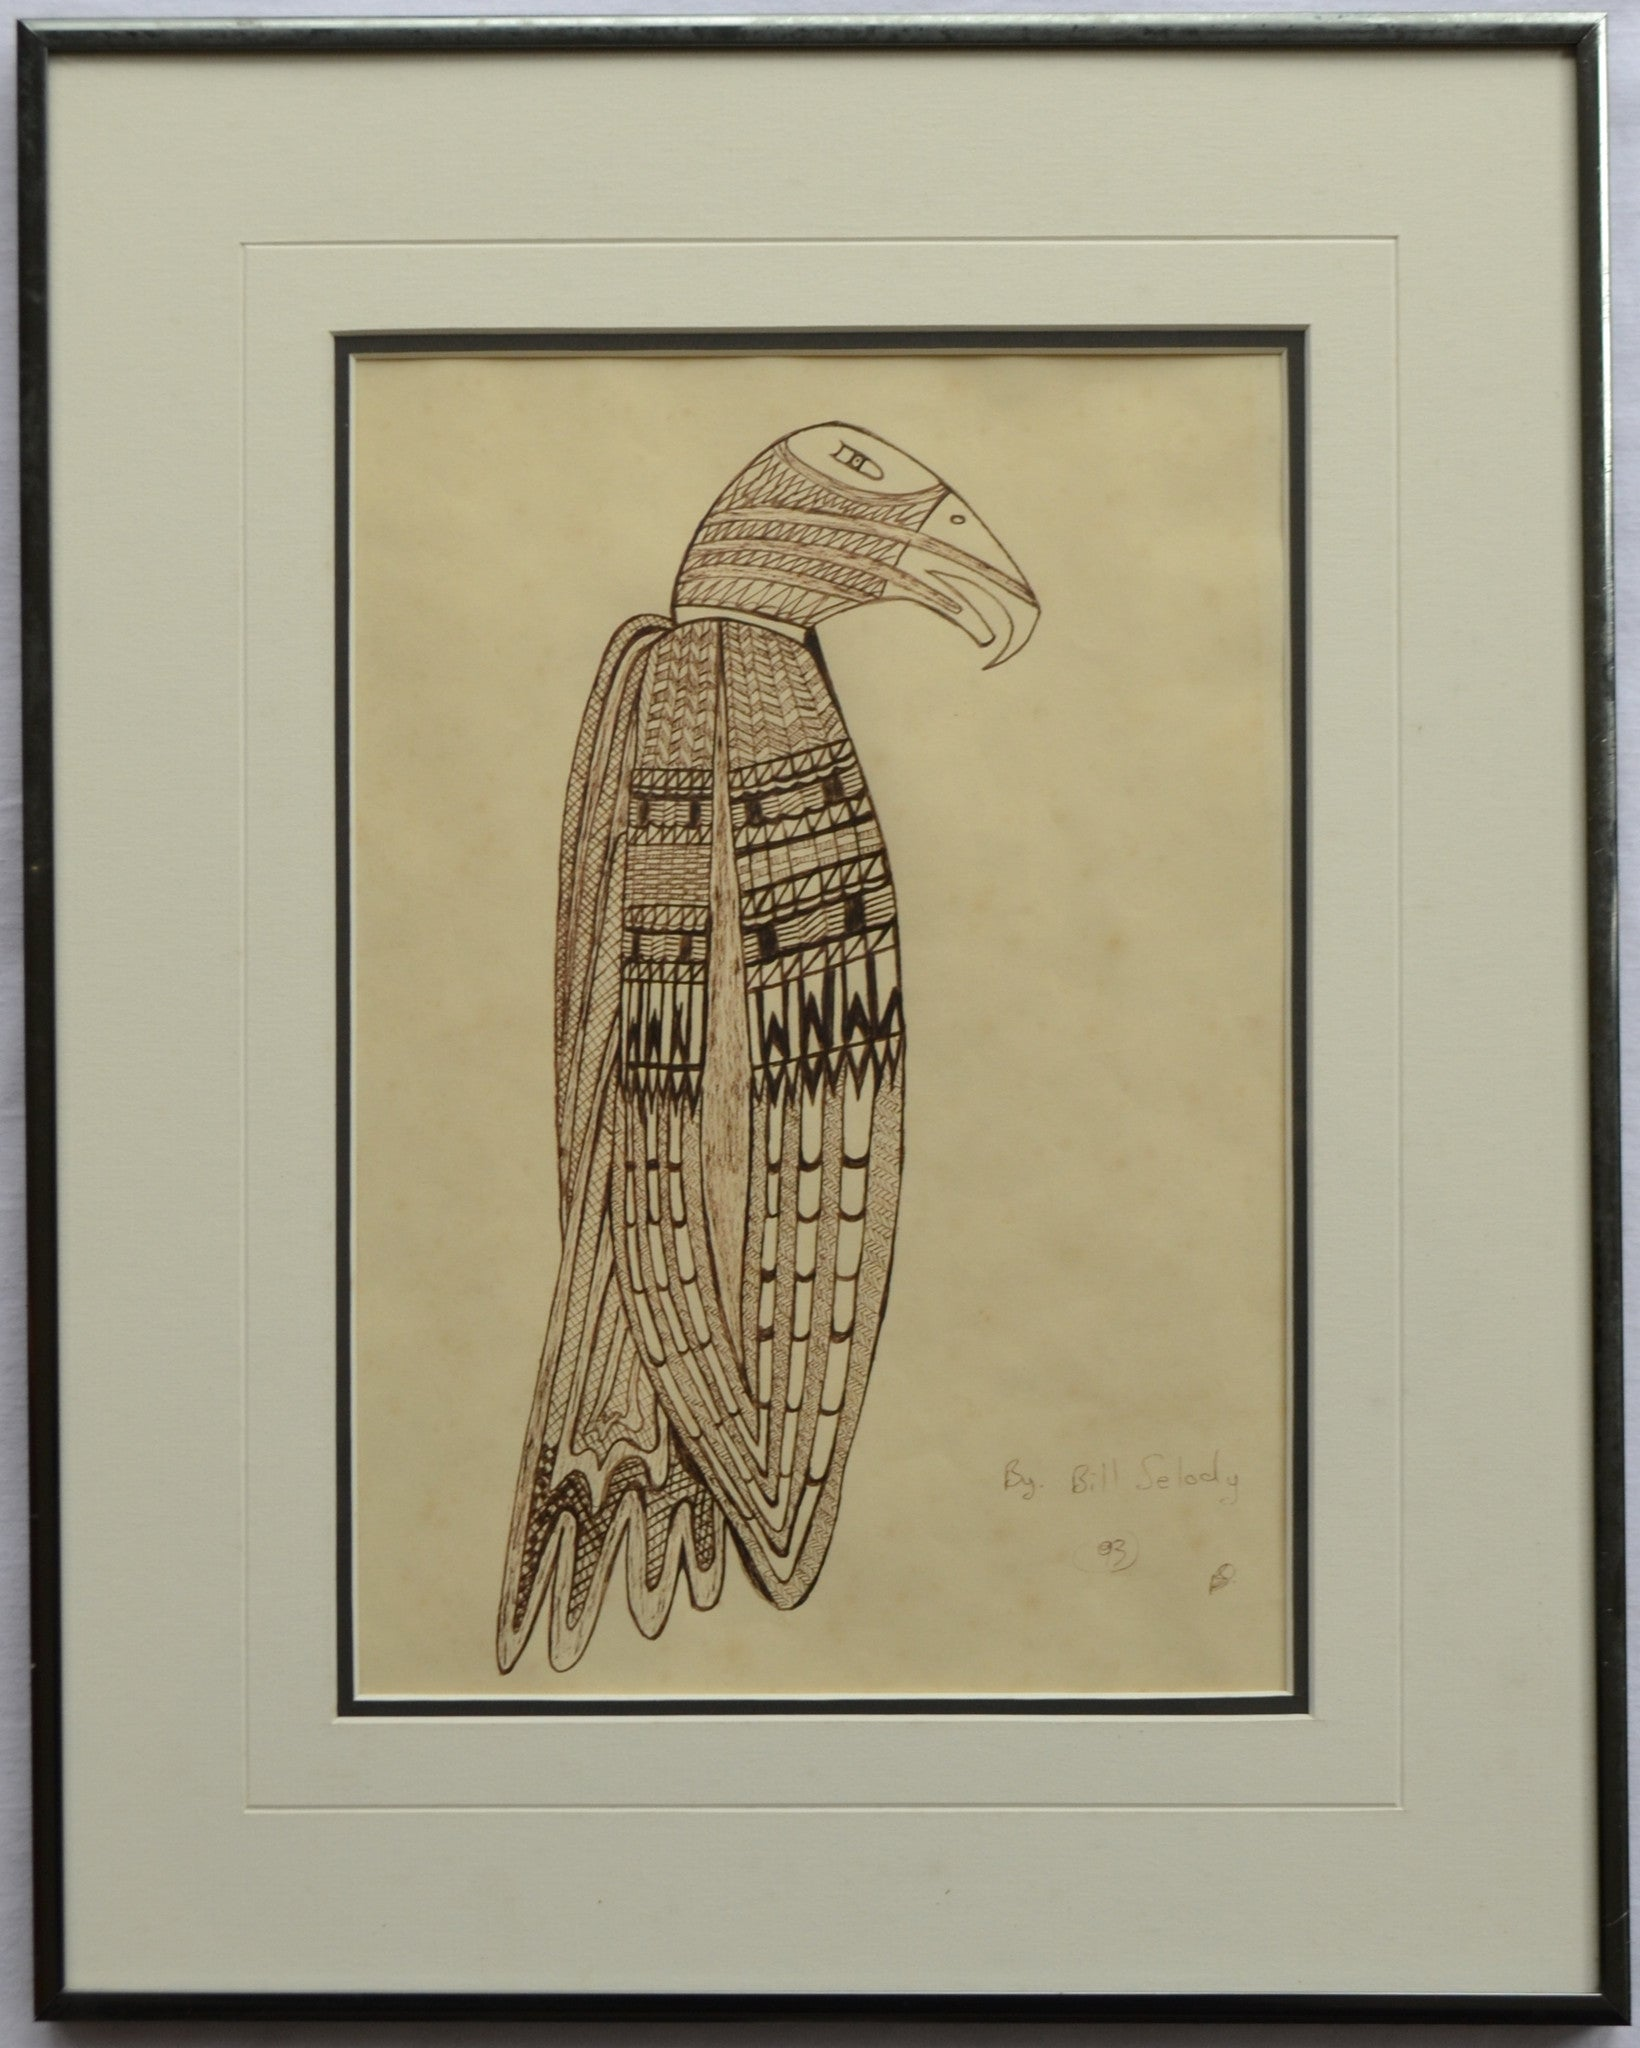 Eagle back by Bill Selody - full